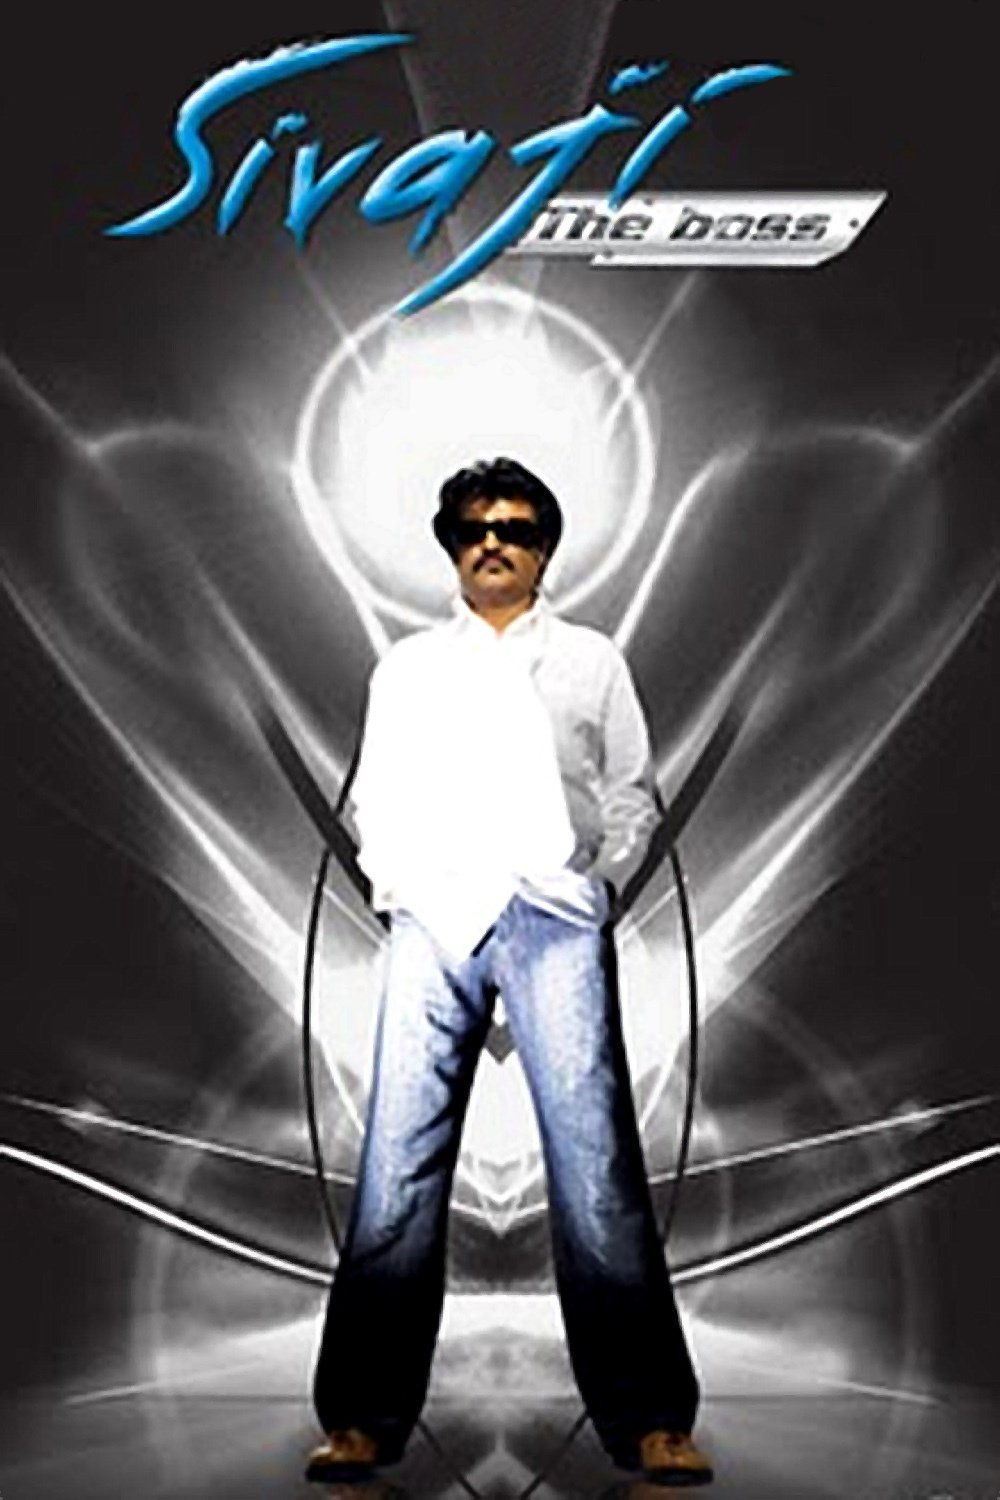 Sivaji: The Boss Afsomali